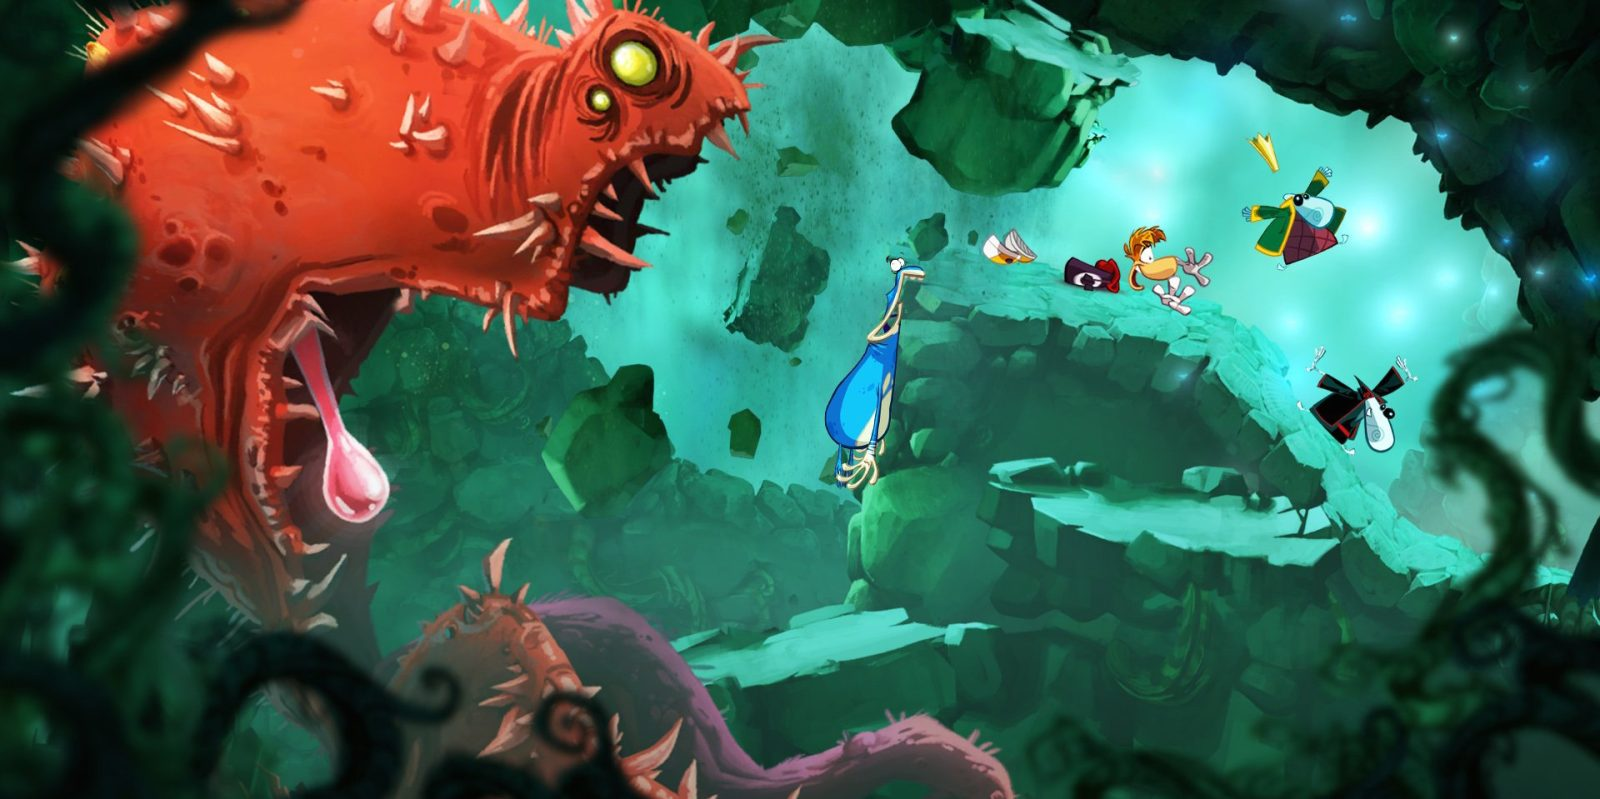 Games/Apps: Mac Back-to-School sale up to 80% off - Rayman Origins